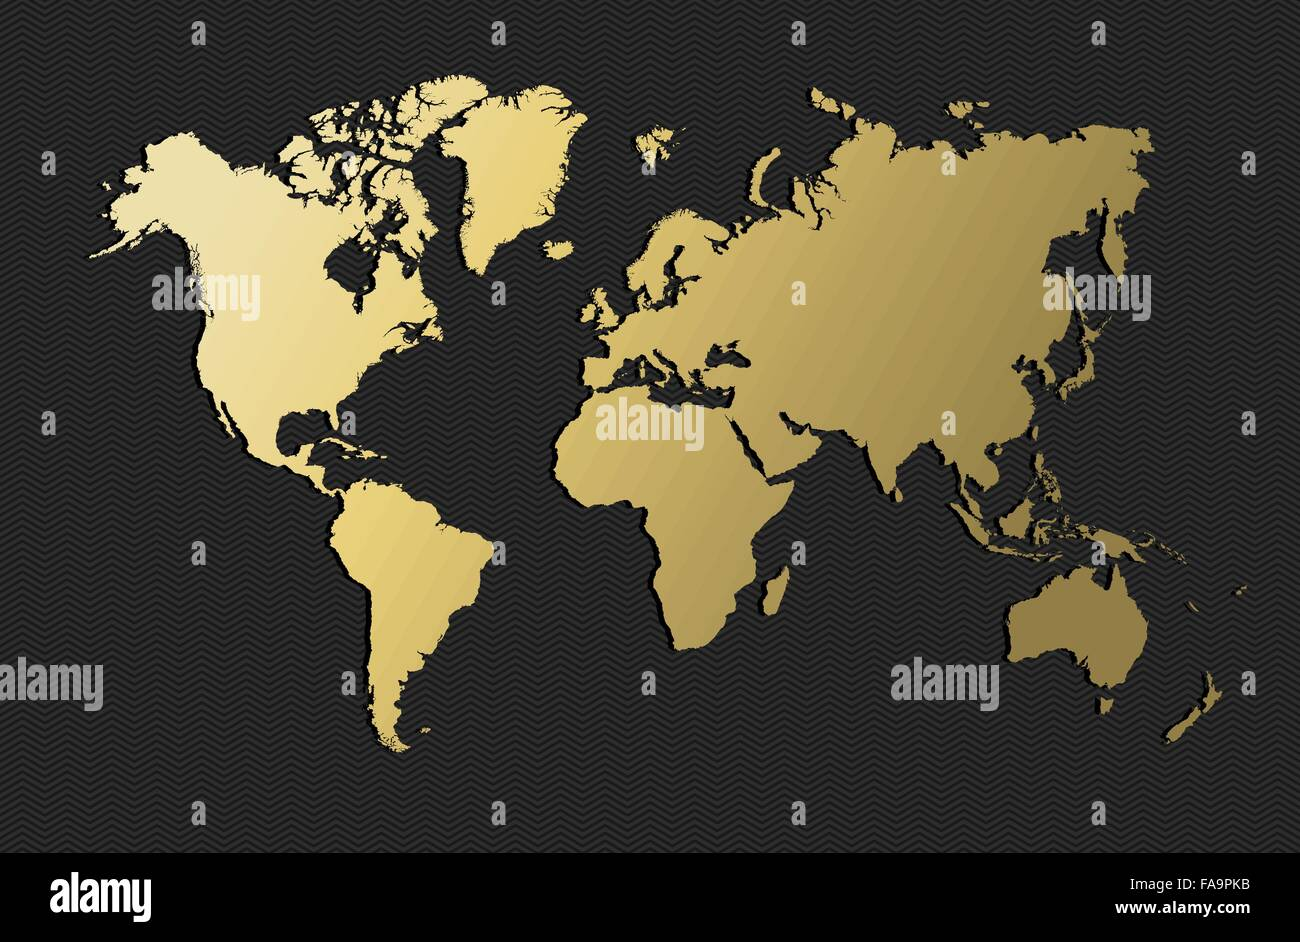 Empty world map silhouette in gold color concept illustration empty world map silhouette in gold color concept illustration eps10 vector gumiabroncs